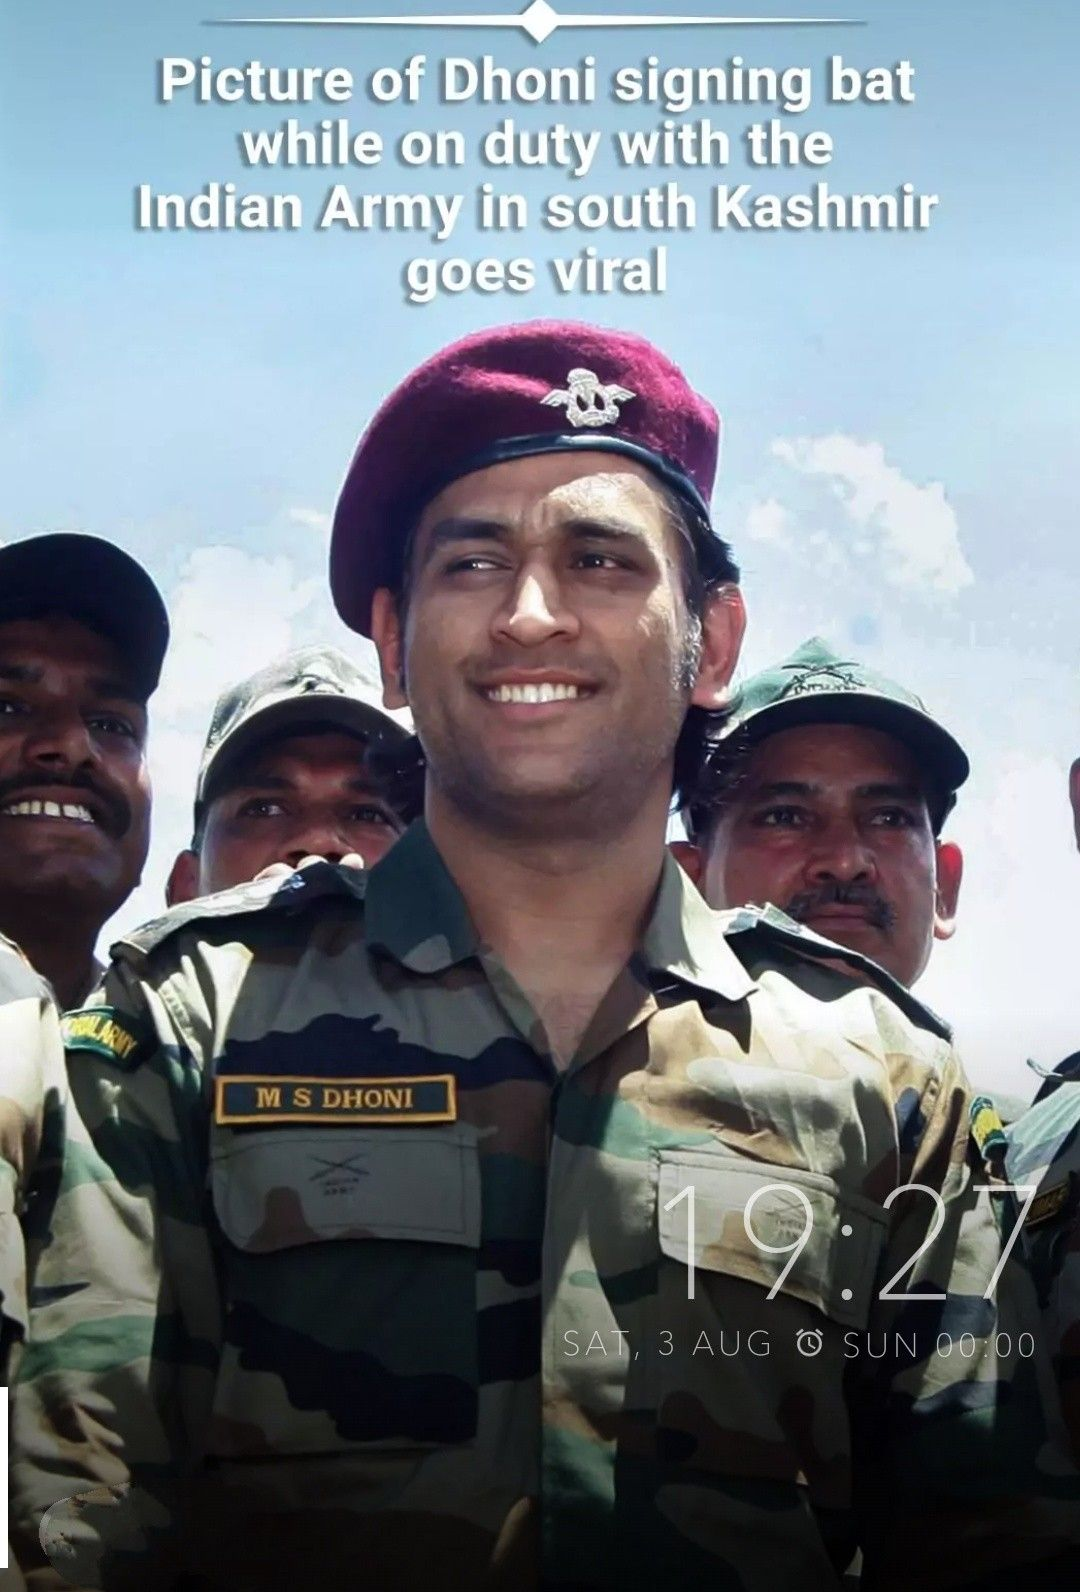 Pin by Anvitha shetty on MSD Friendship quotes funny Dhoni 1080x1592